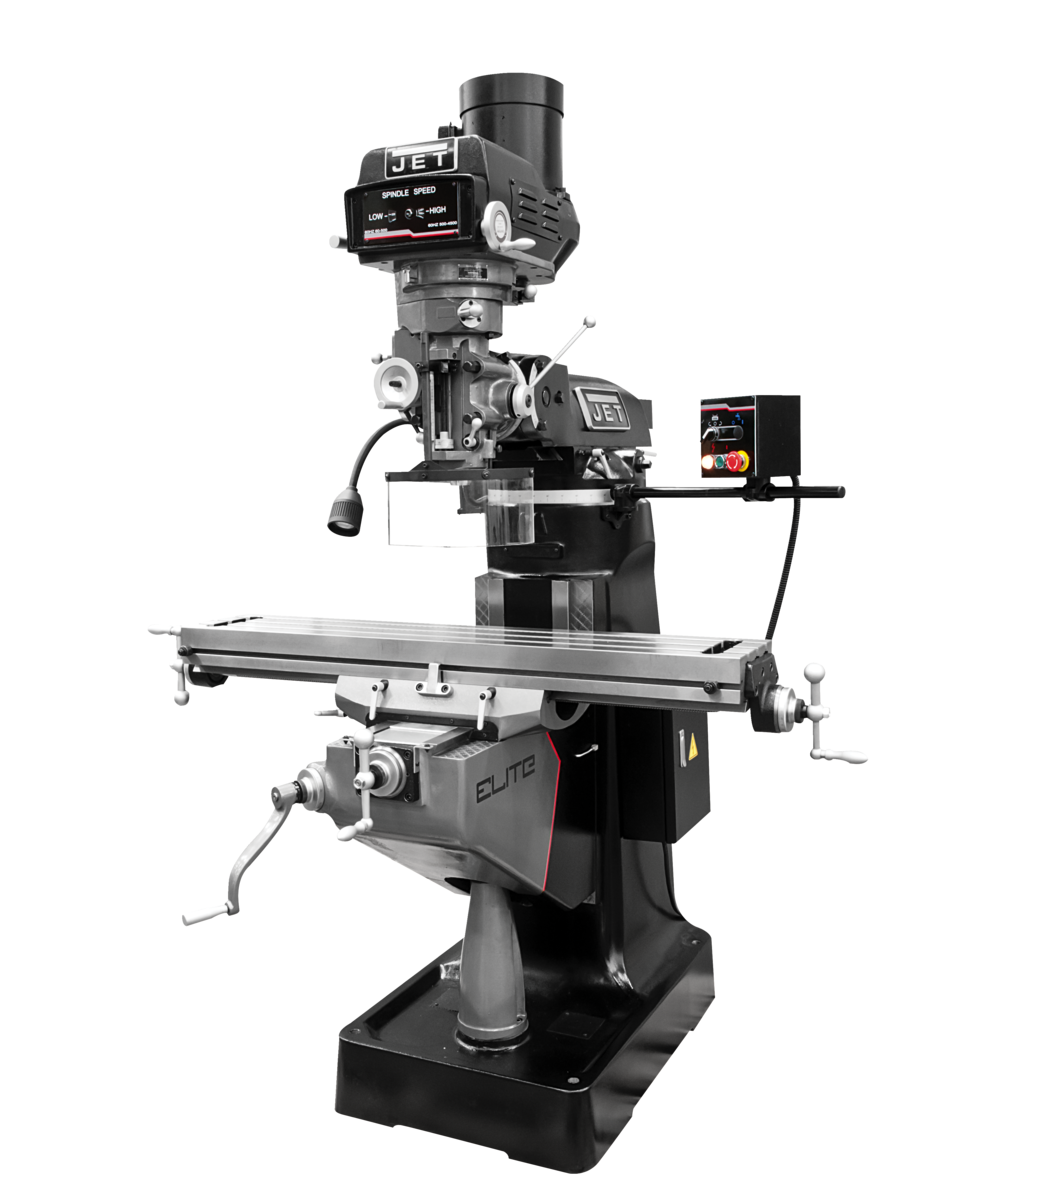 ETM-949 Mill with 3-Axis Newall DP700 (Knee) DRO and X-Axis JET Powerfeed and USA Made Air Draw Bar